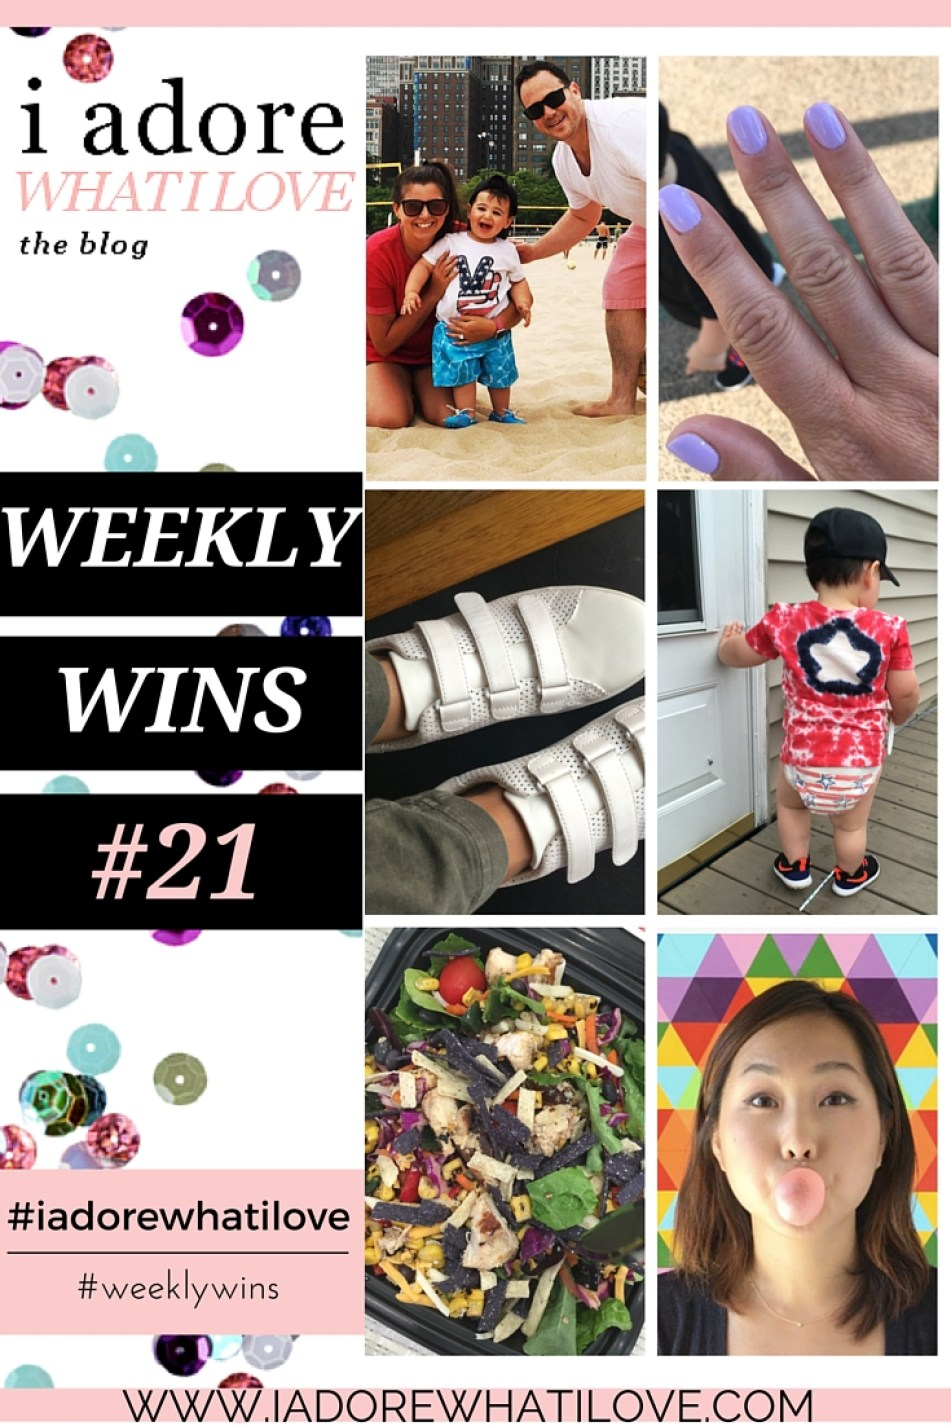 I Adore What I Love Blog // WEEKLY WINS #21 // www.iadorewhatilove.com #iadorewhatilove